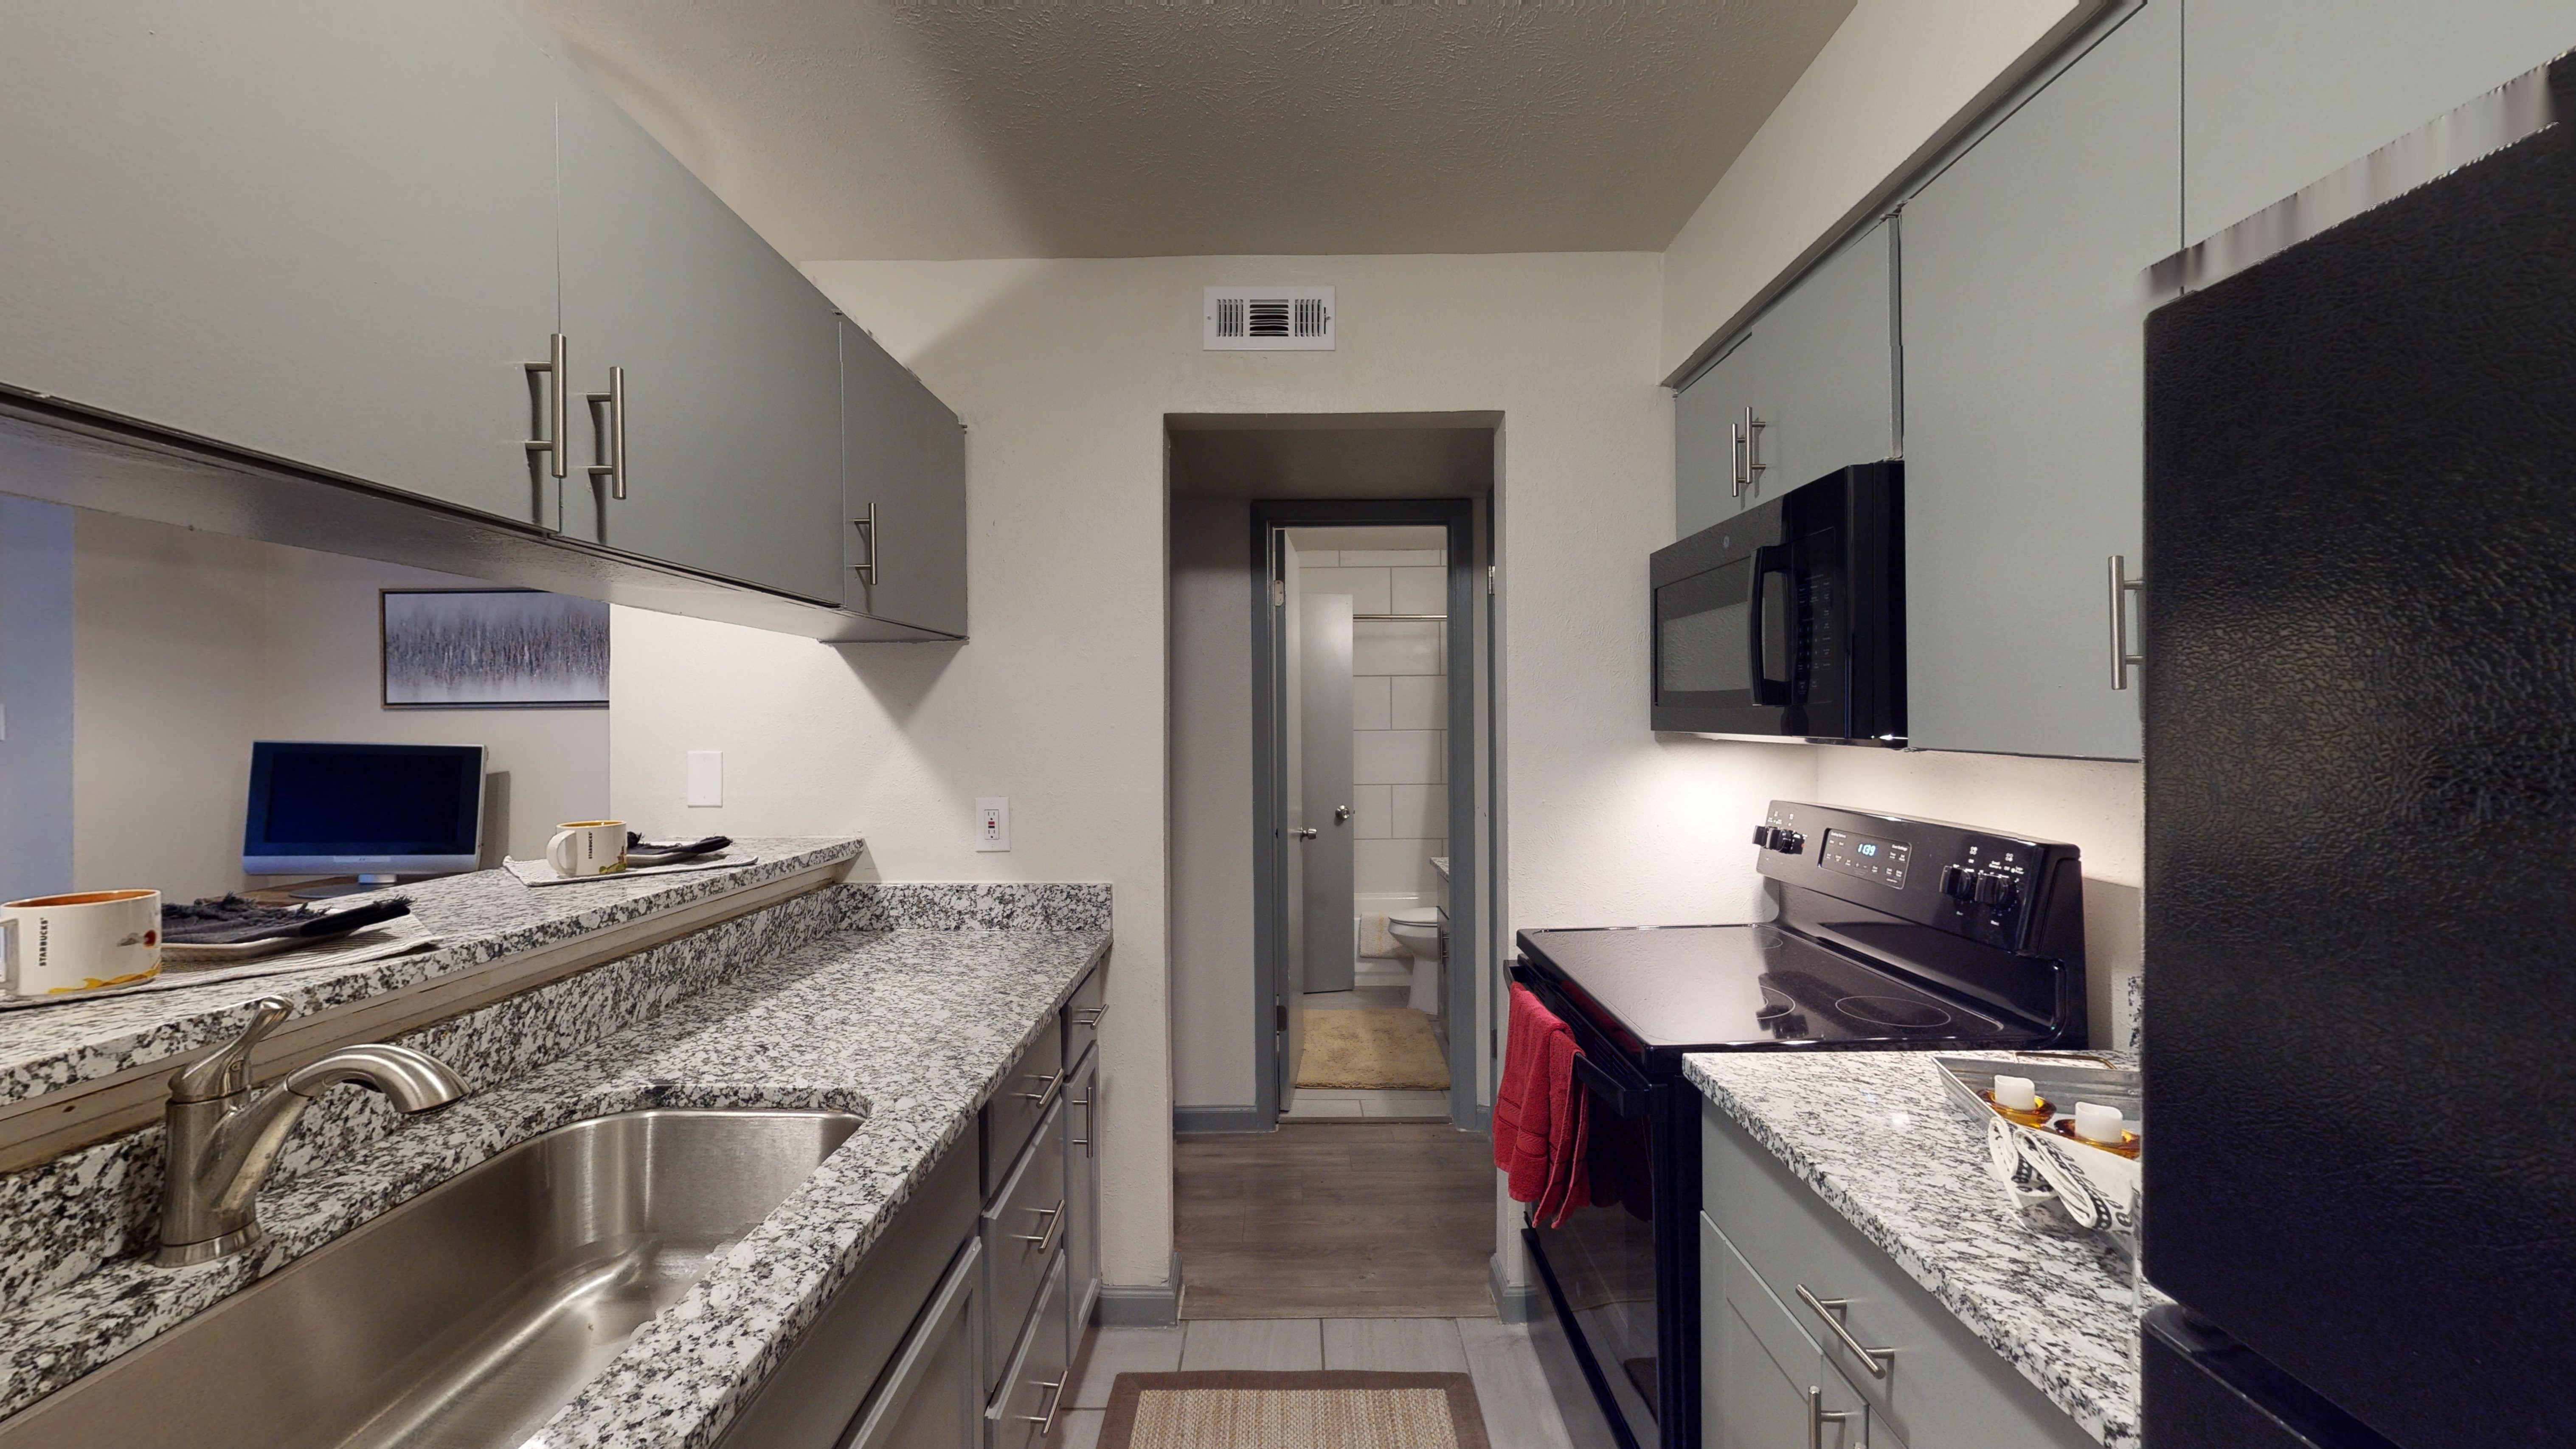 Apartments Near DTS The Wesley for Dallas Theological Seminary Students in Dallas, TX